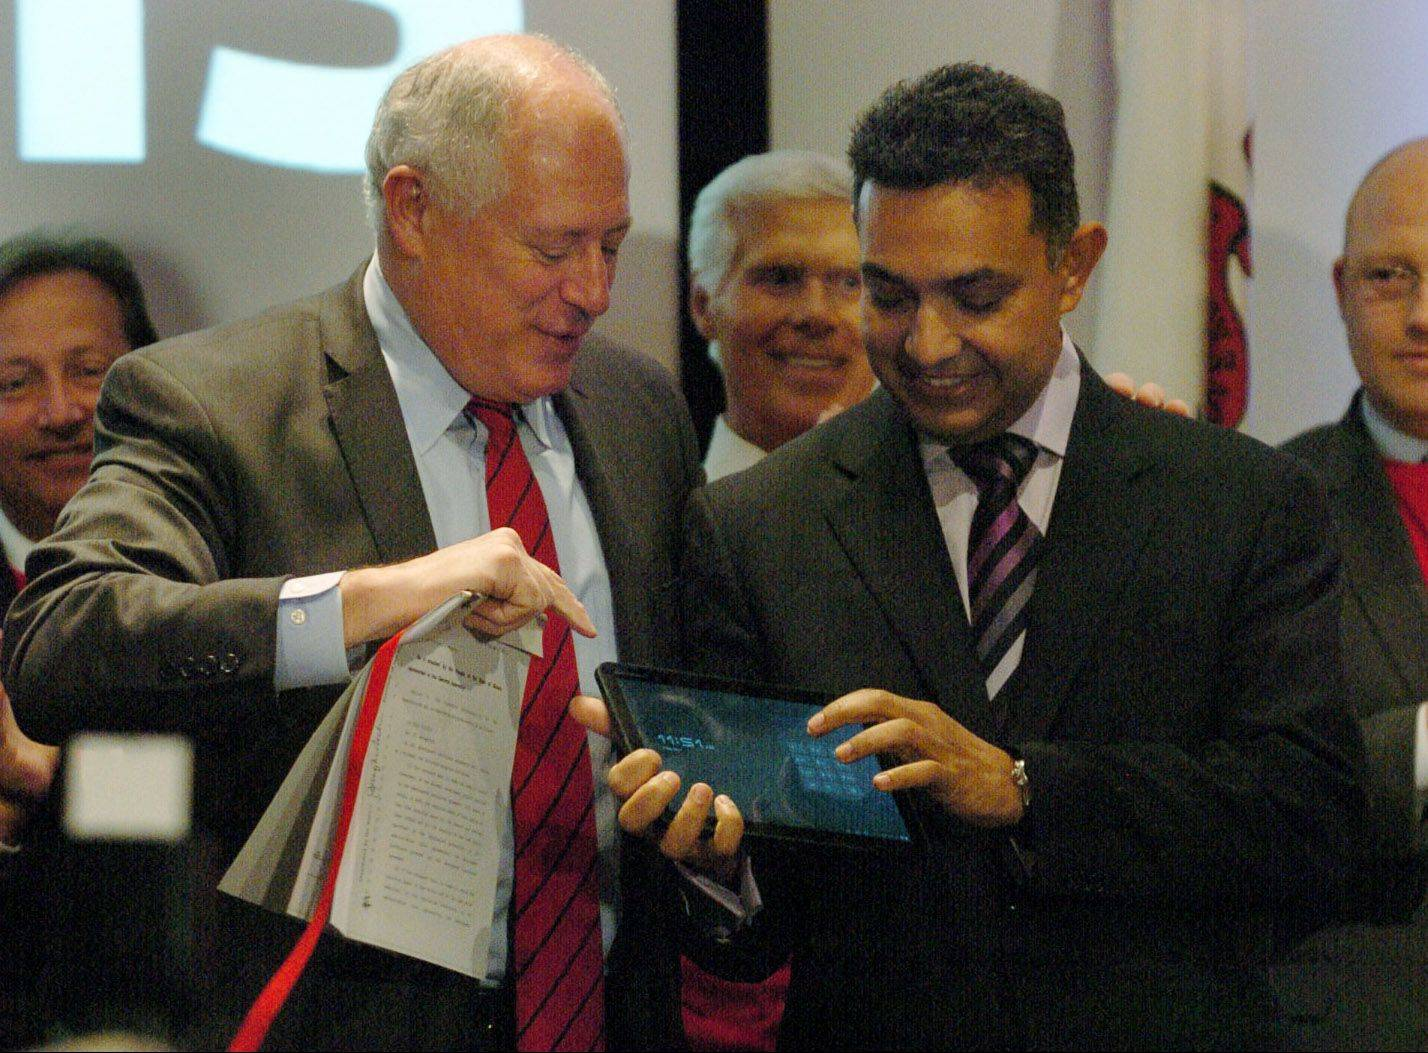 Illinois Gov. Pat Quinn and Motorola Mobility Chairman and CEO Dr. Sanjay Jha, right, look at the Motorola XOOM tablet in May after announcing that the Motorola Mobility Inc. corporate headquarters would be located in Libertyville.